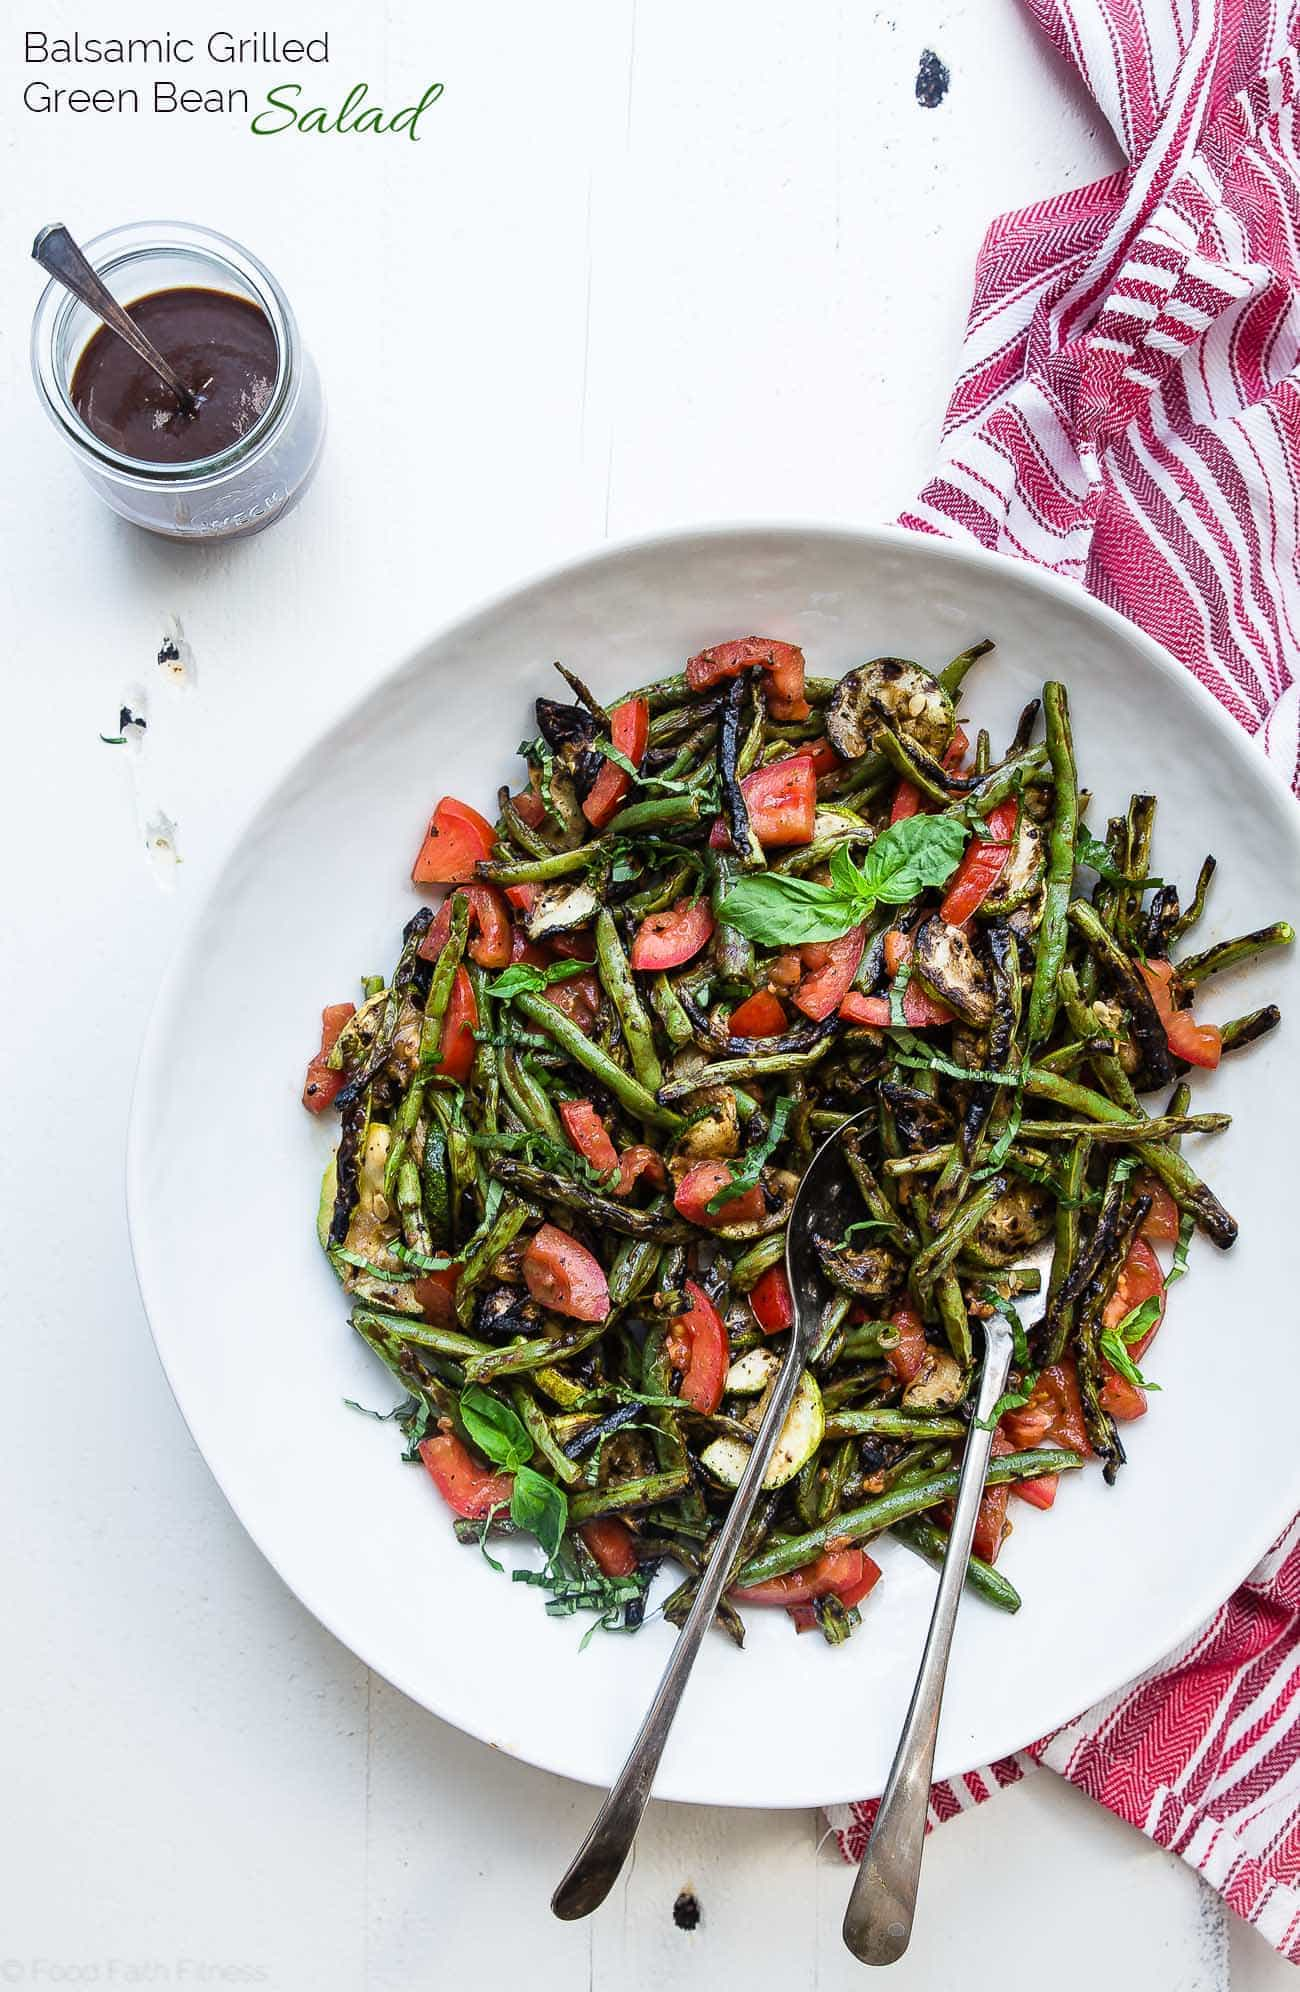 Grilled zucchini and green bean salad overhead in a bowl. Recipe on Foodfaithfitness.com